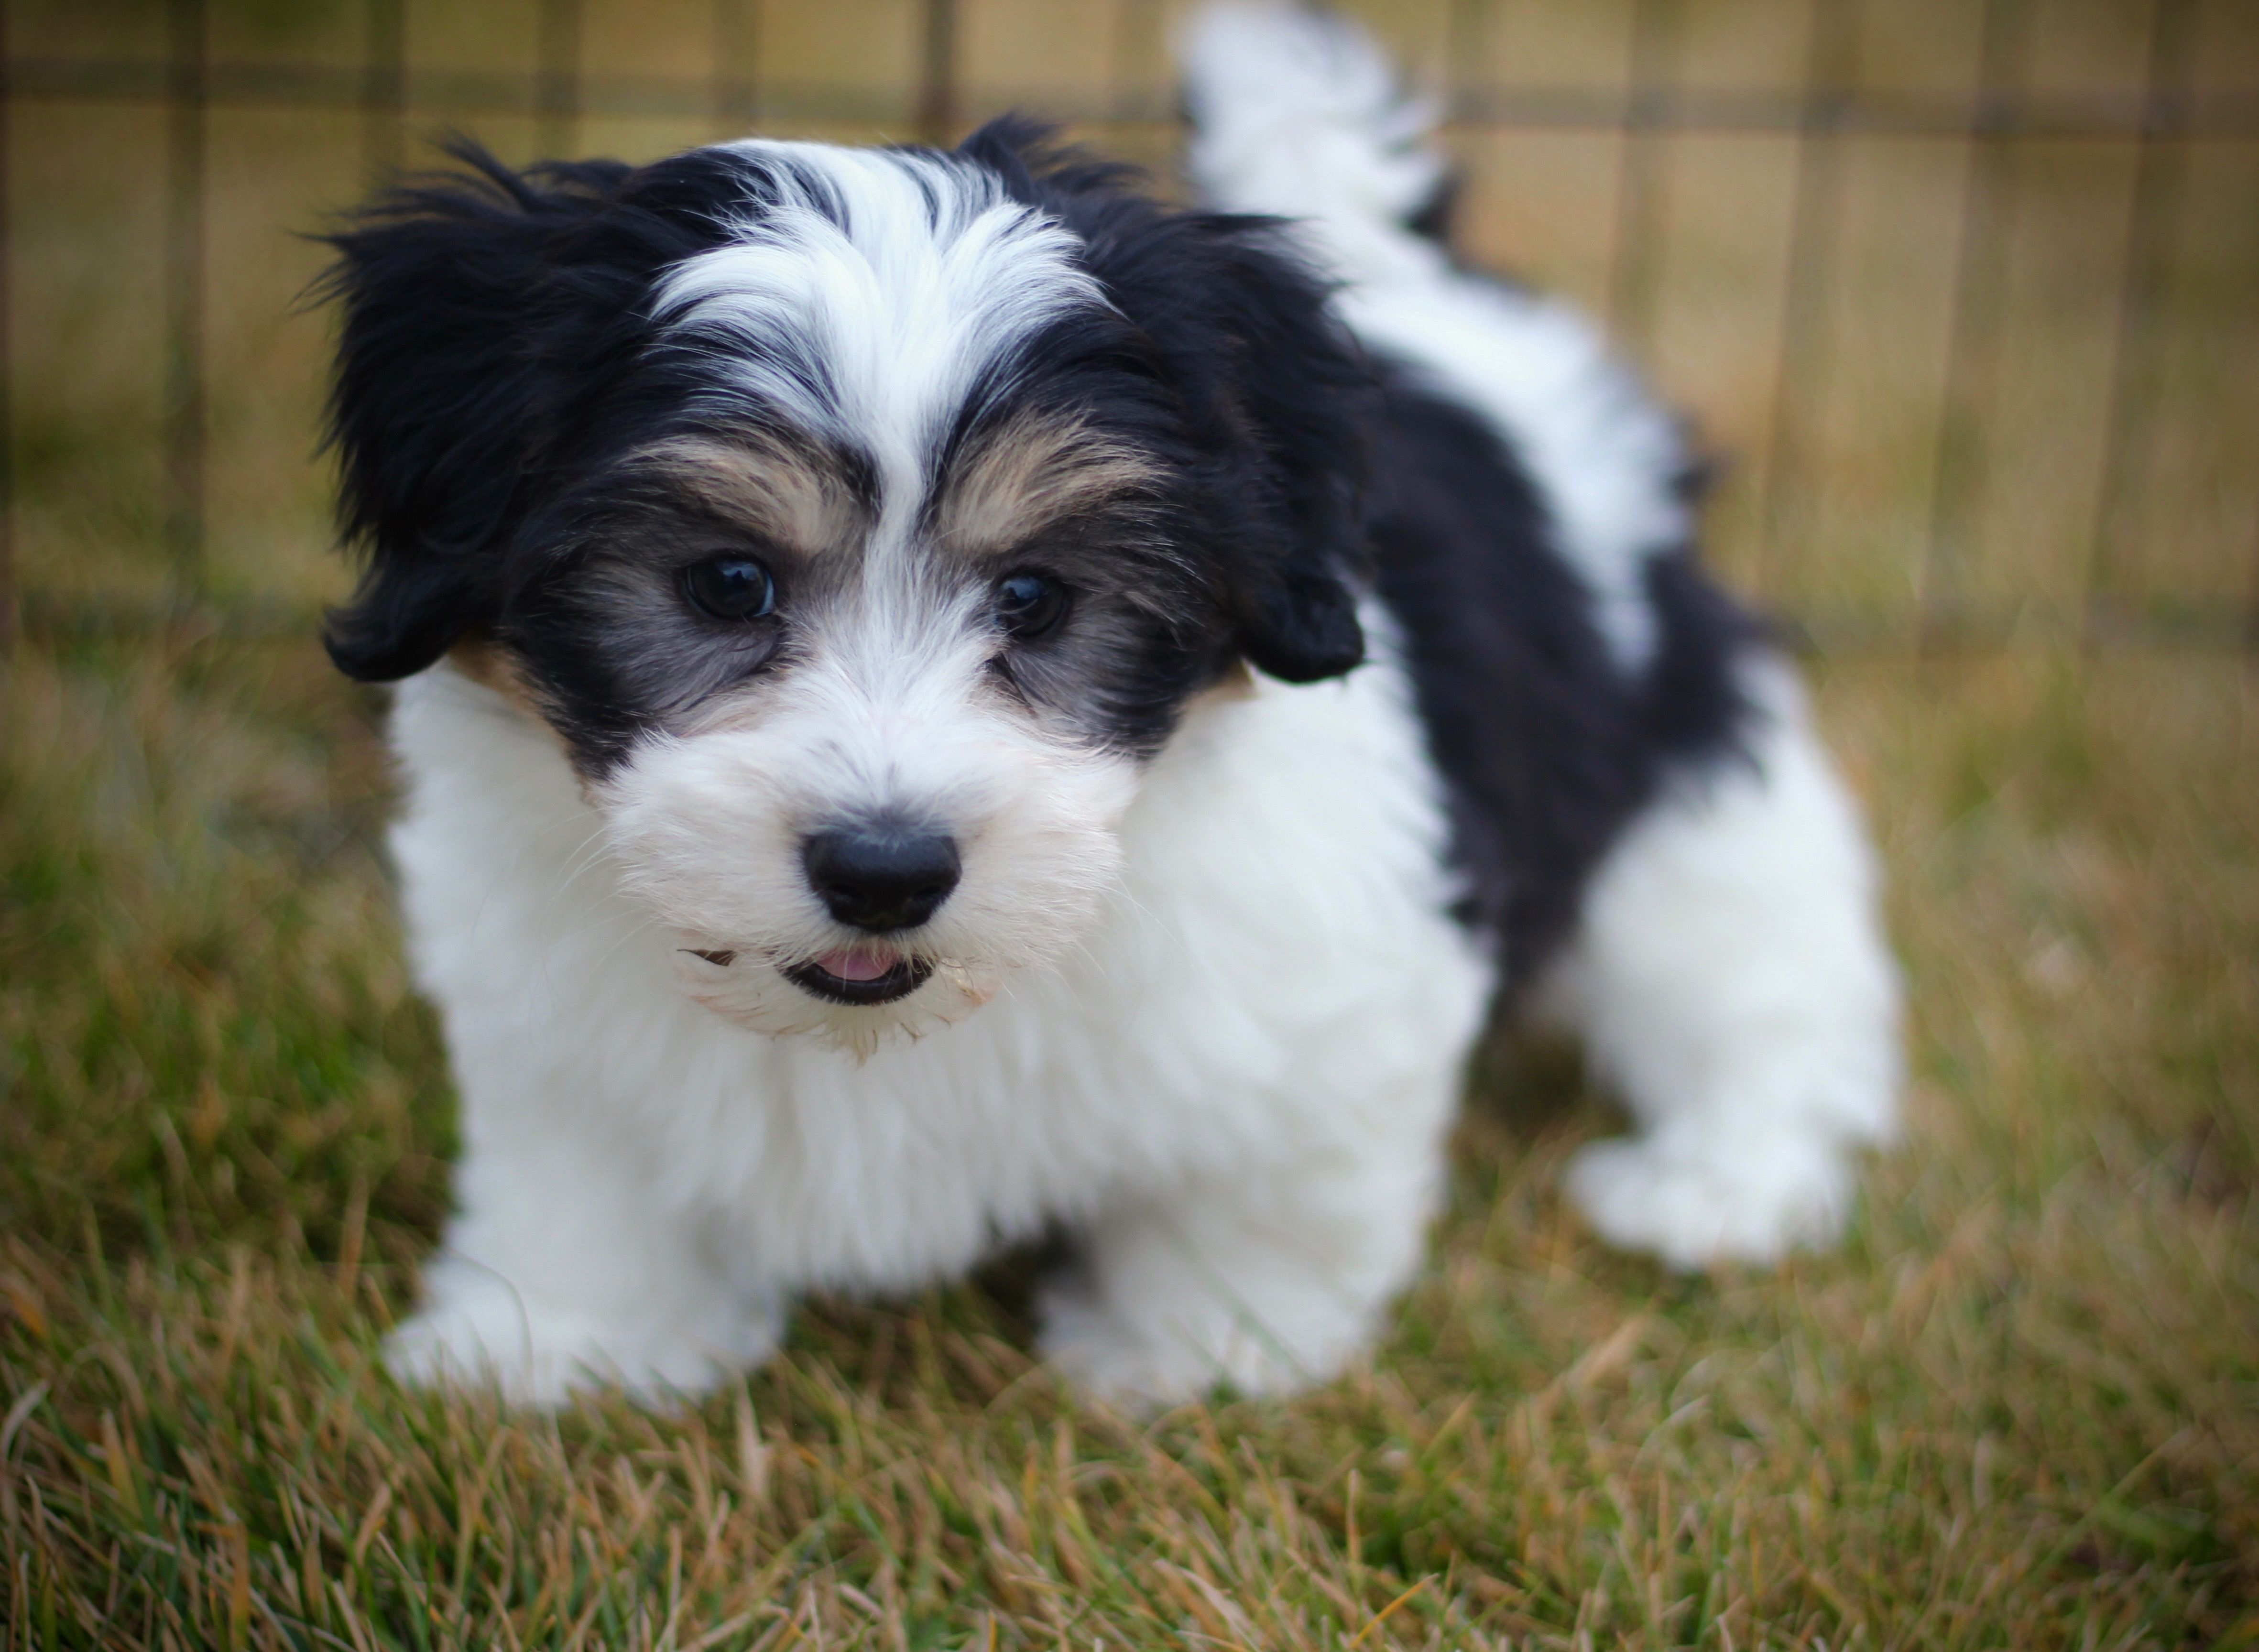 Shichon puppies for sale in kentucky - Bella Shichon Puppy For Sale From Belleville Pa 24aranyos Kutyak Stb Pinterest